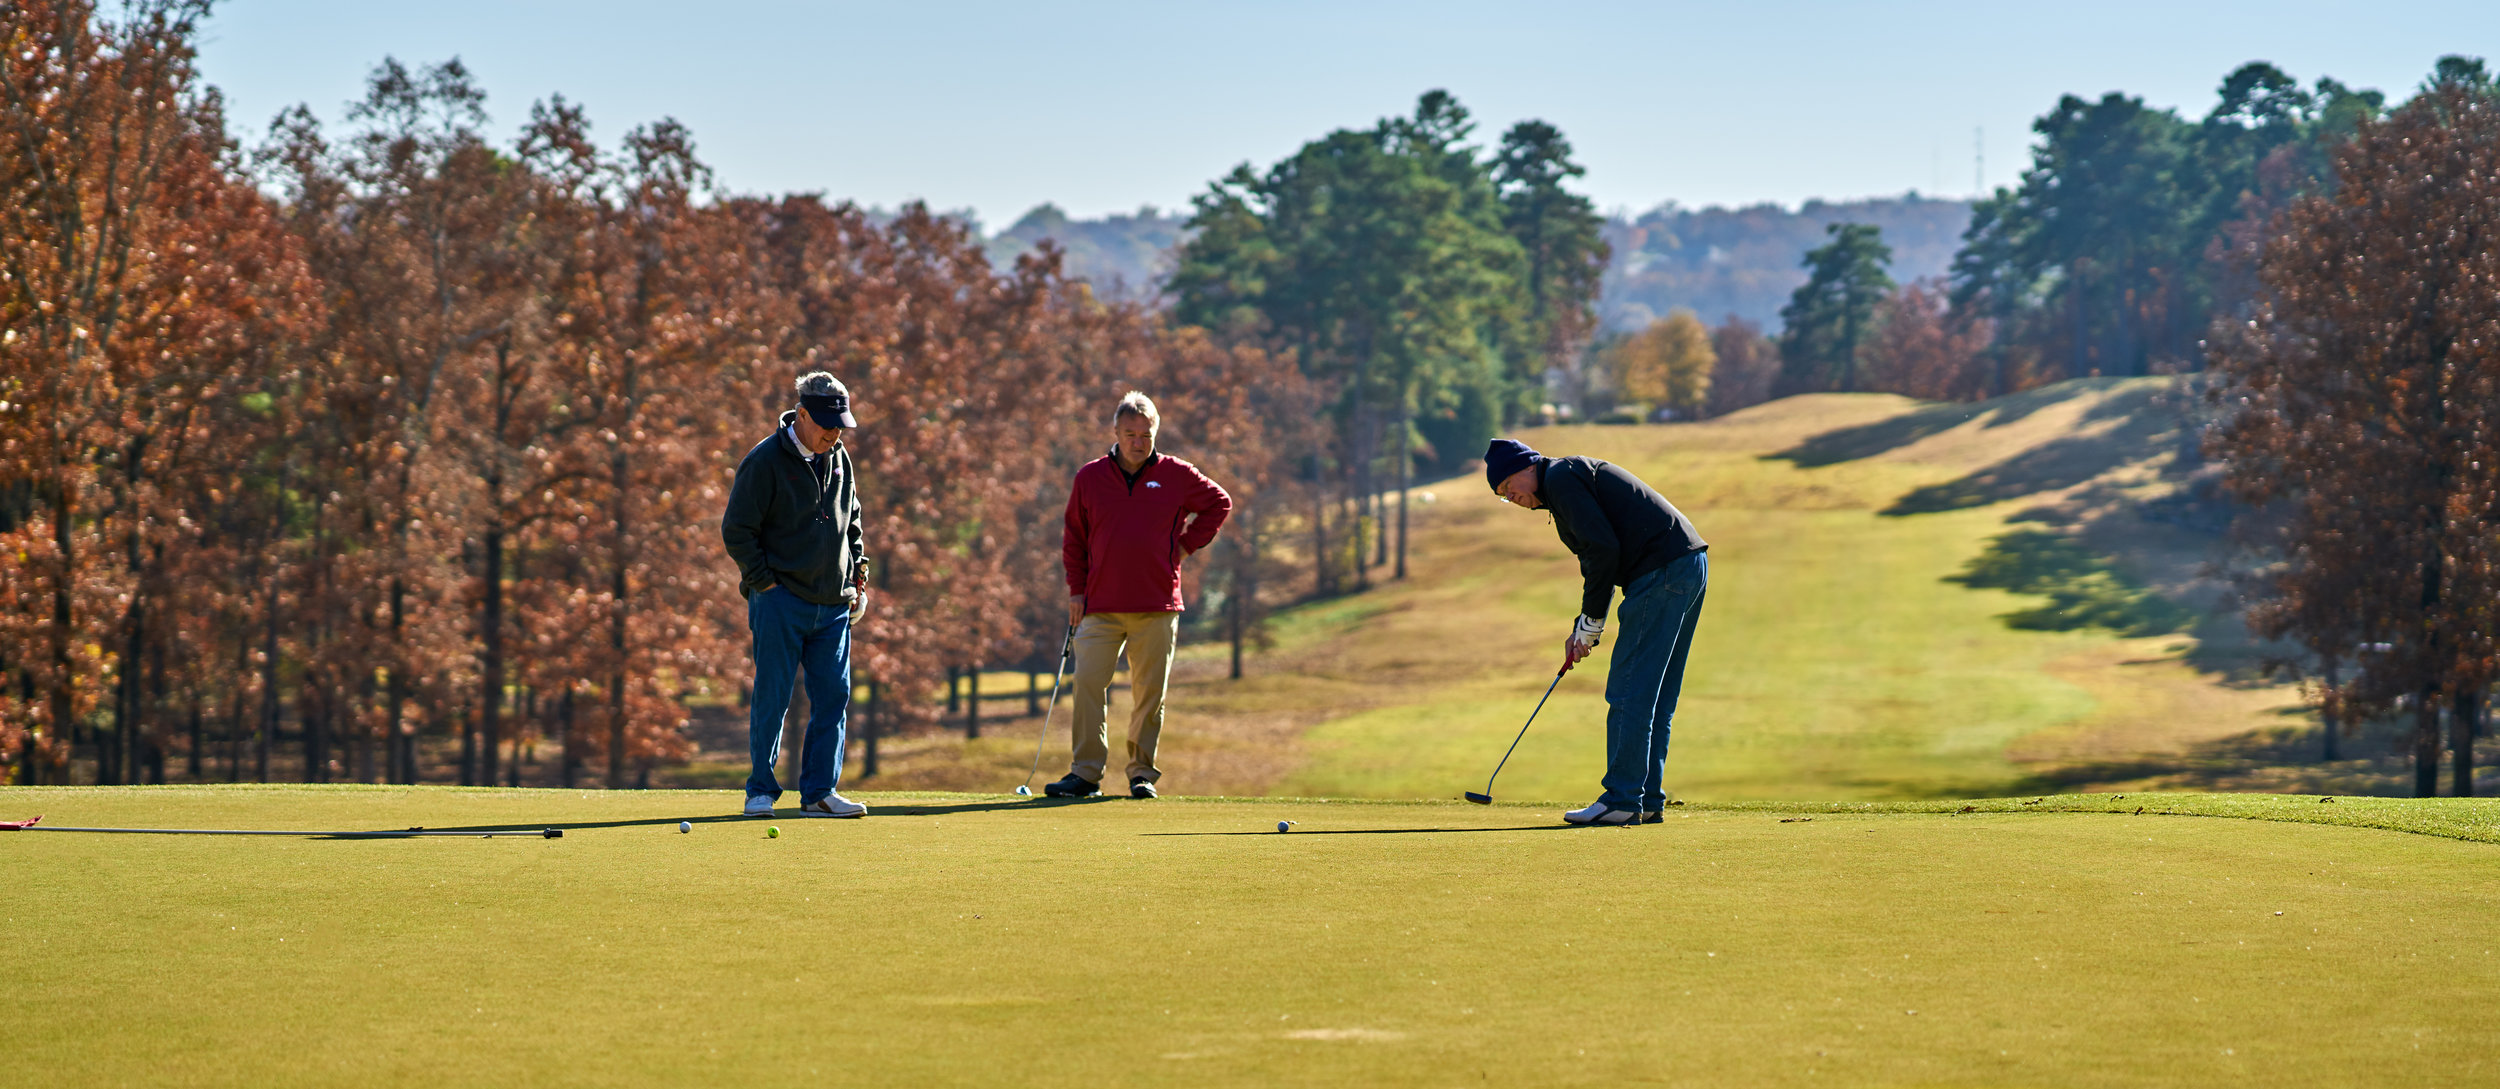 Recreational amenities are important elements in quality of life, such as this golf course in Cabot.